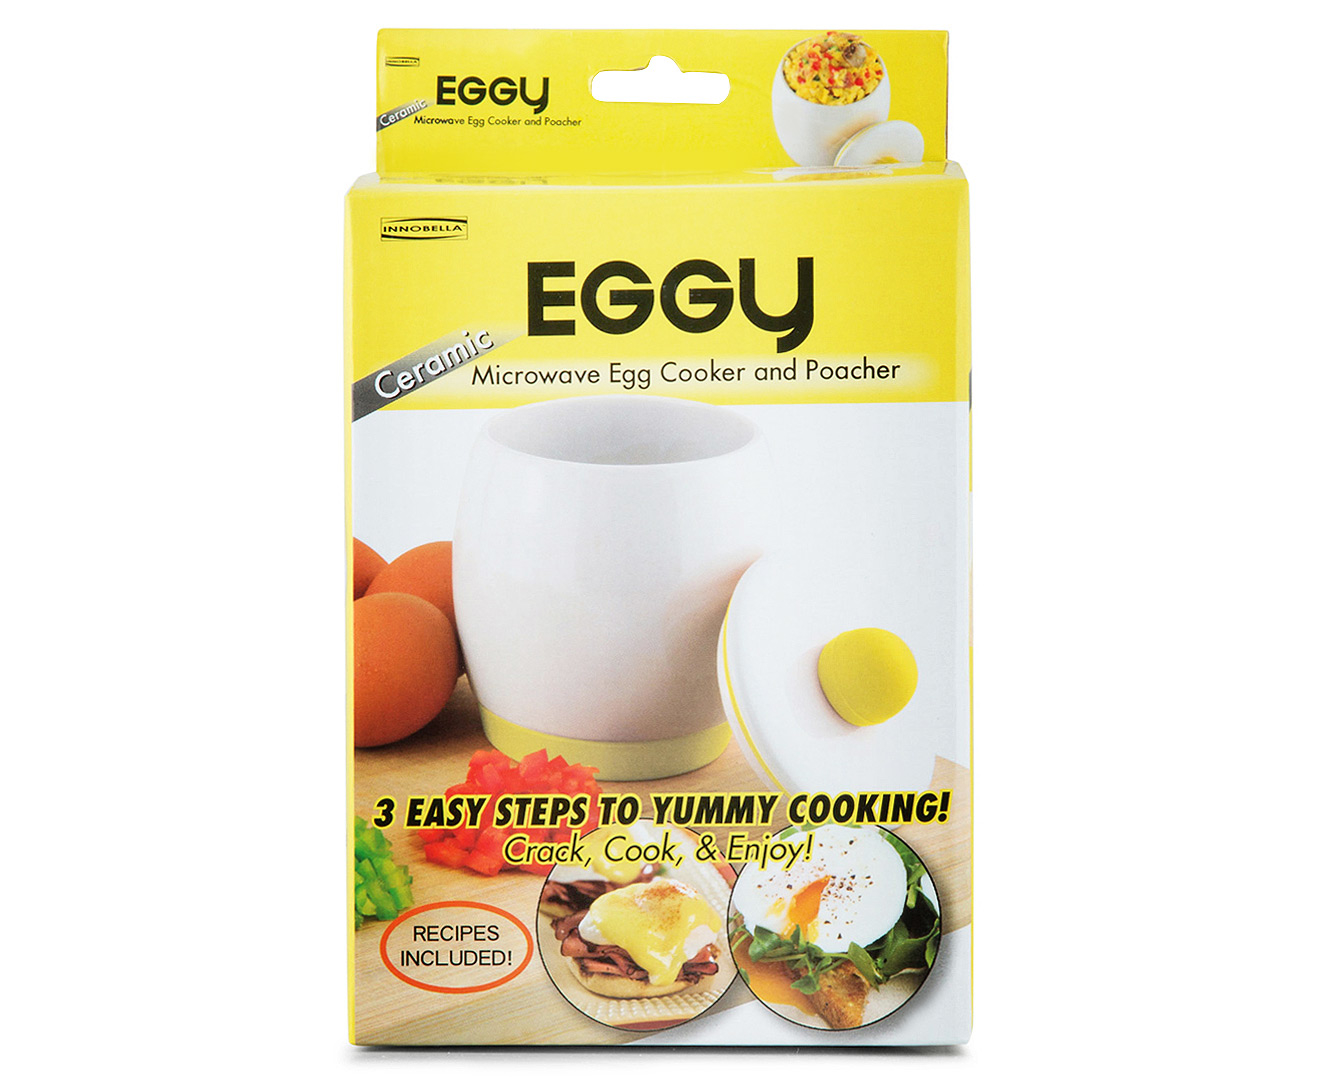 eggy microwave egg cooker instructions